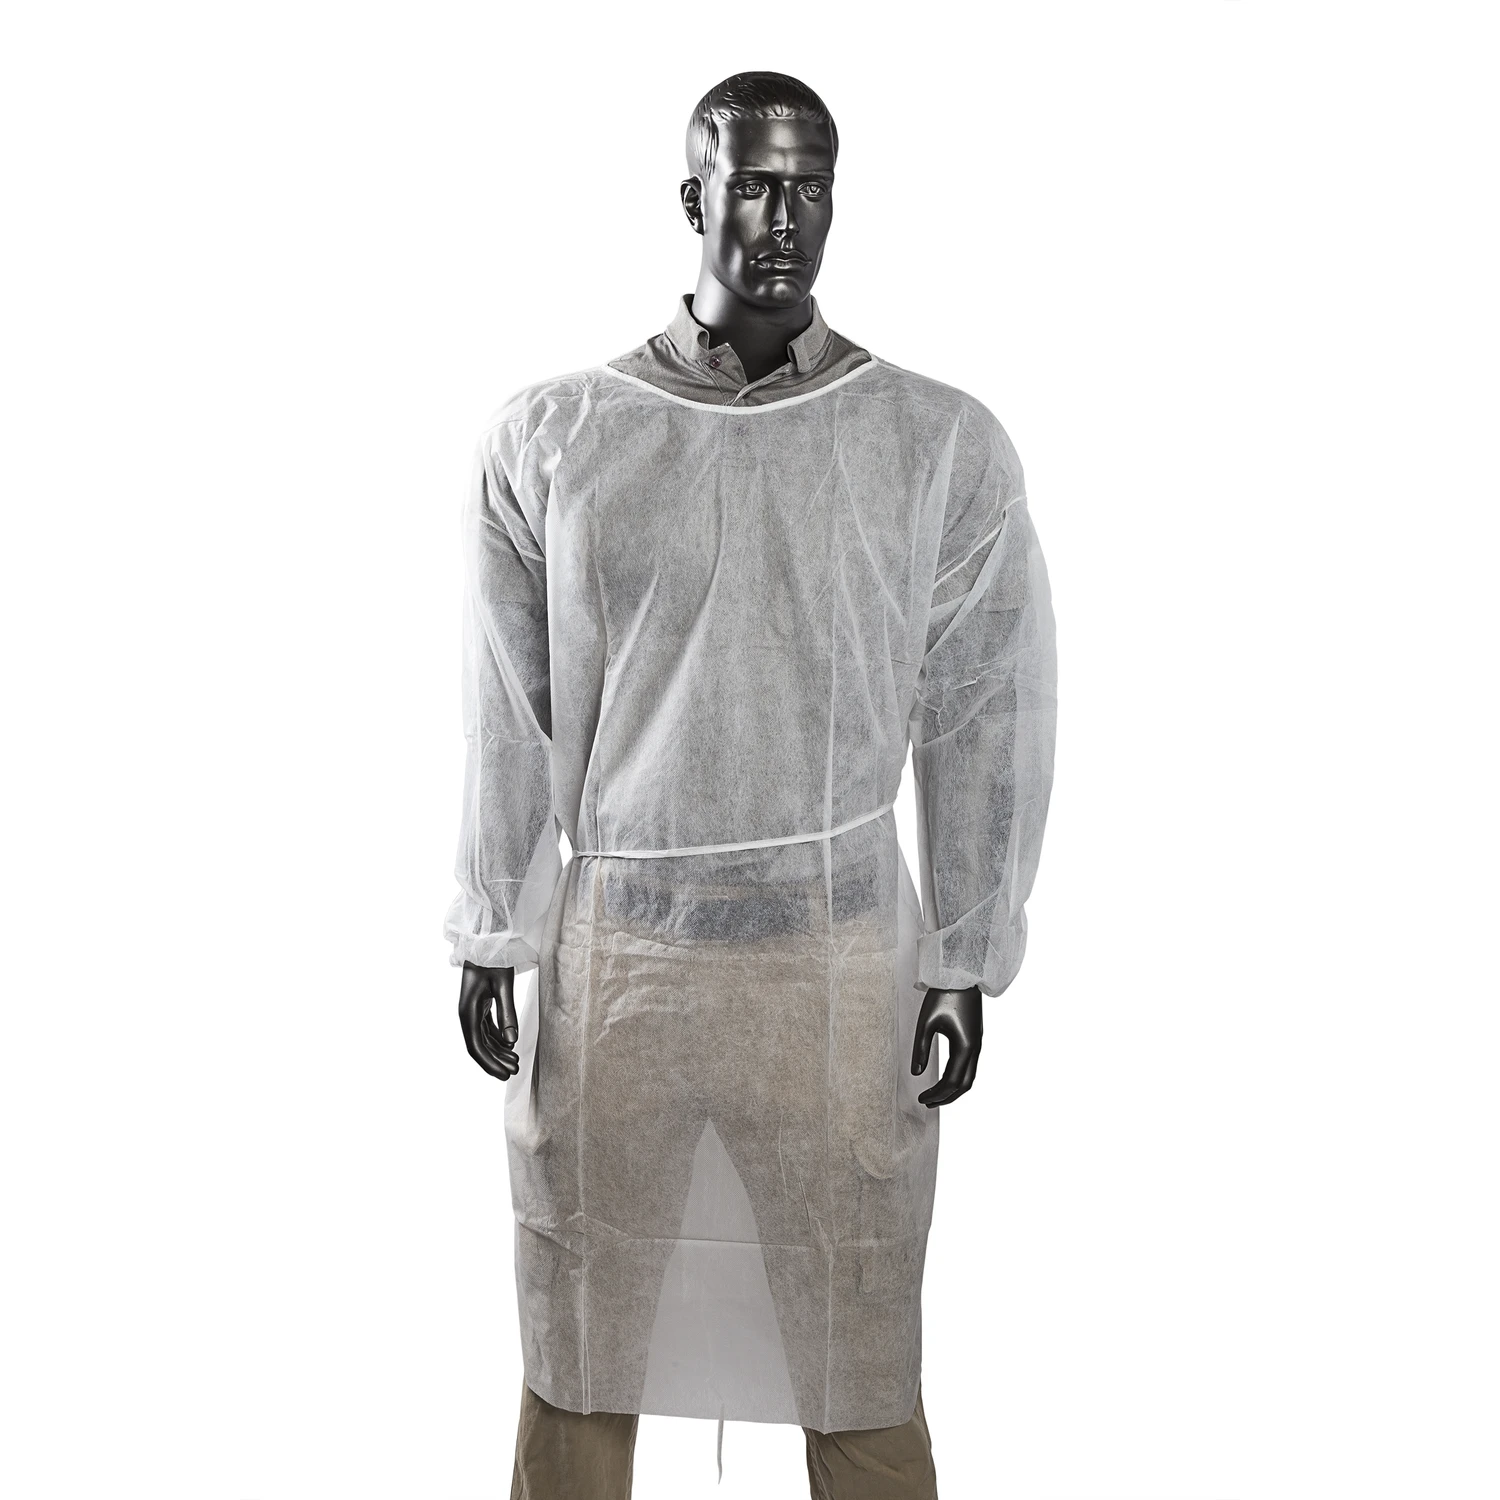 Civil long sleeves isolation gown yellow pp gsm 40 - KingCare   KingCare.net